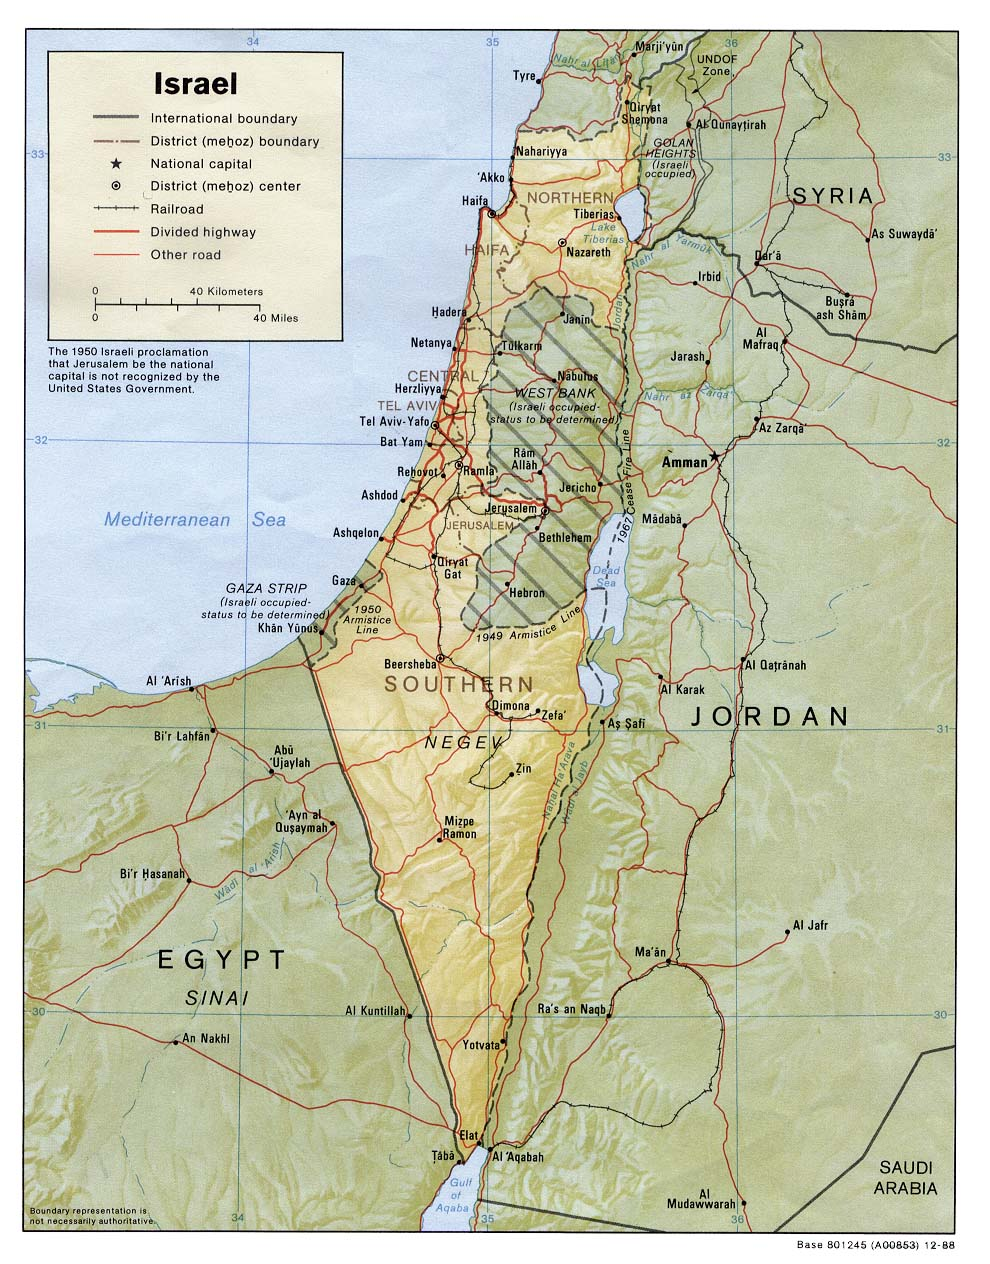 Israel Map Tourist Attractions ToursMapsCom – Tourist Attractions Map In Israel